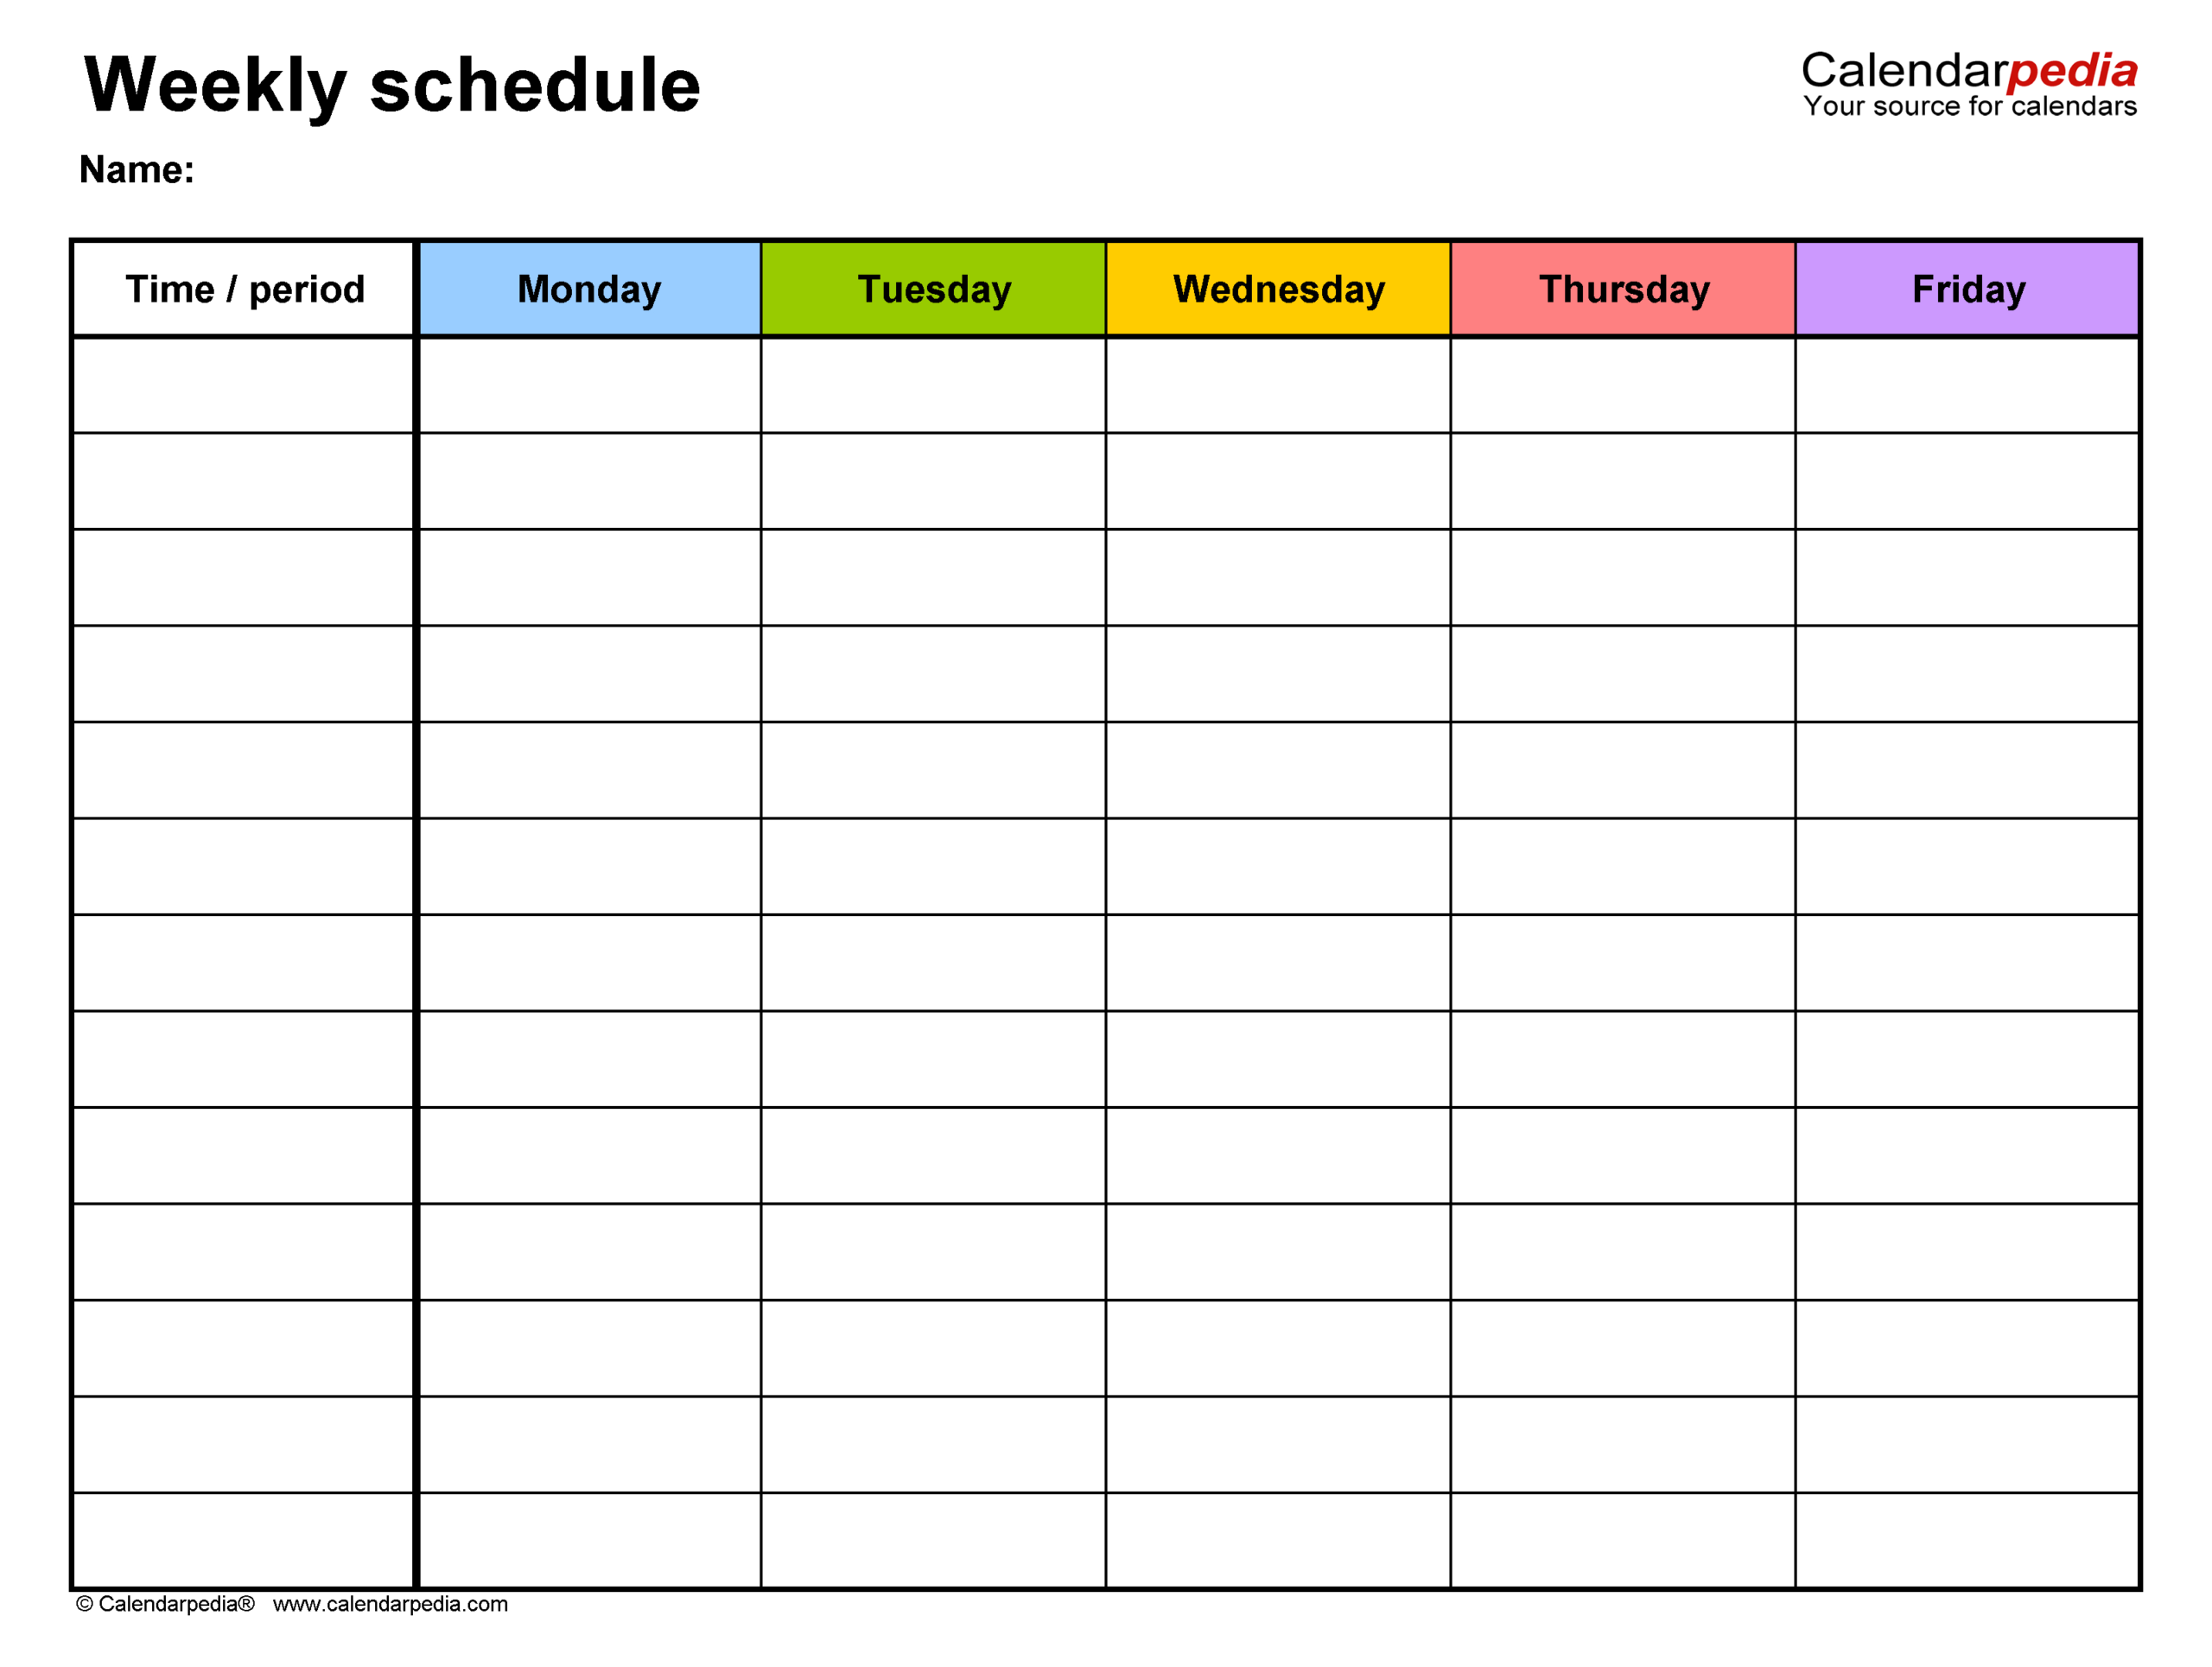 Free Weekly Schedules For Excel - 18 Templates  Toddleer Calendar Daily Activties For June July August